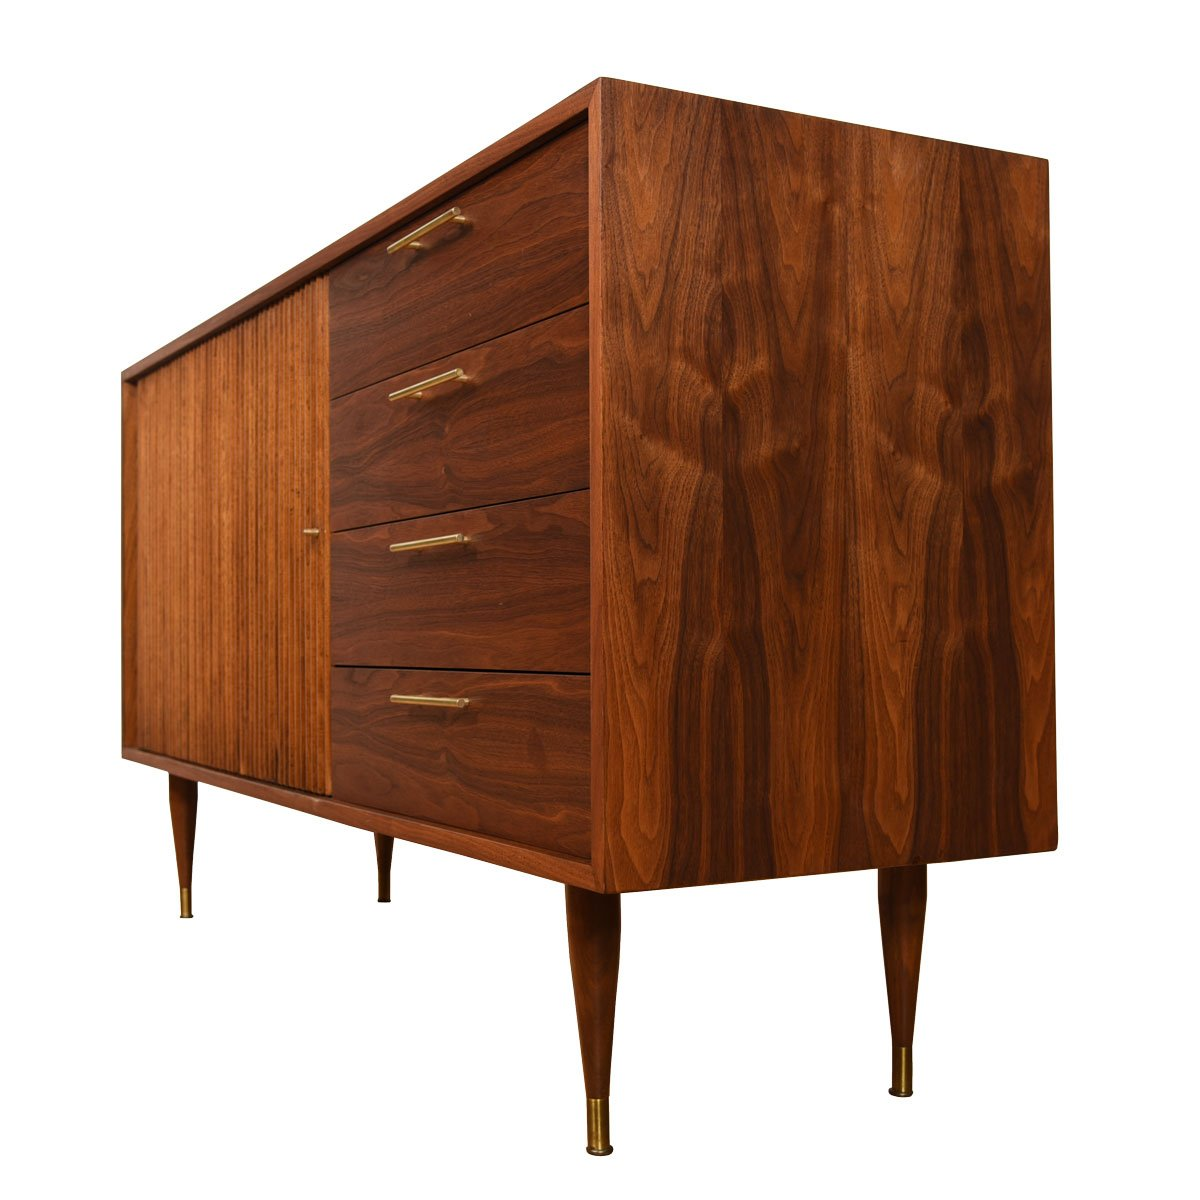 Tambour Door Walnut Credenza / Dresser 33″ Tall